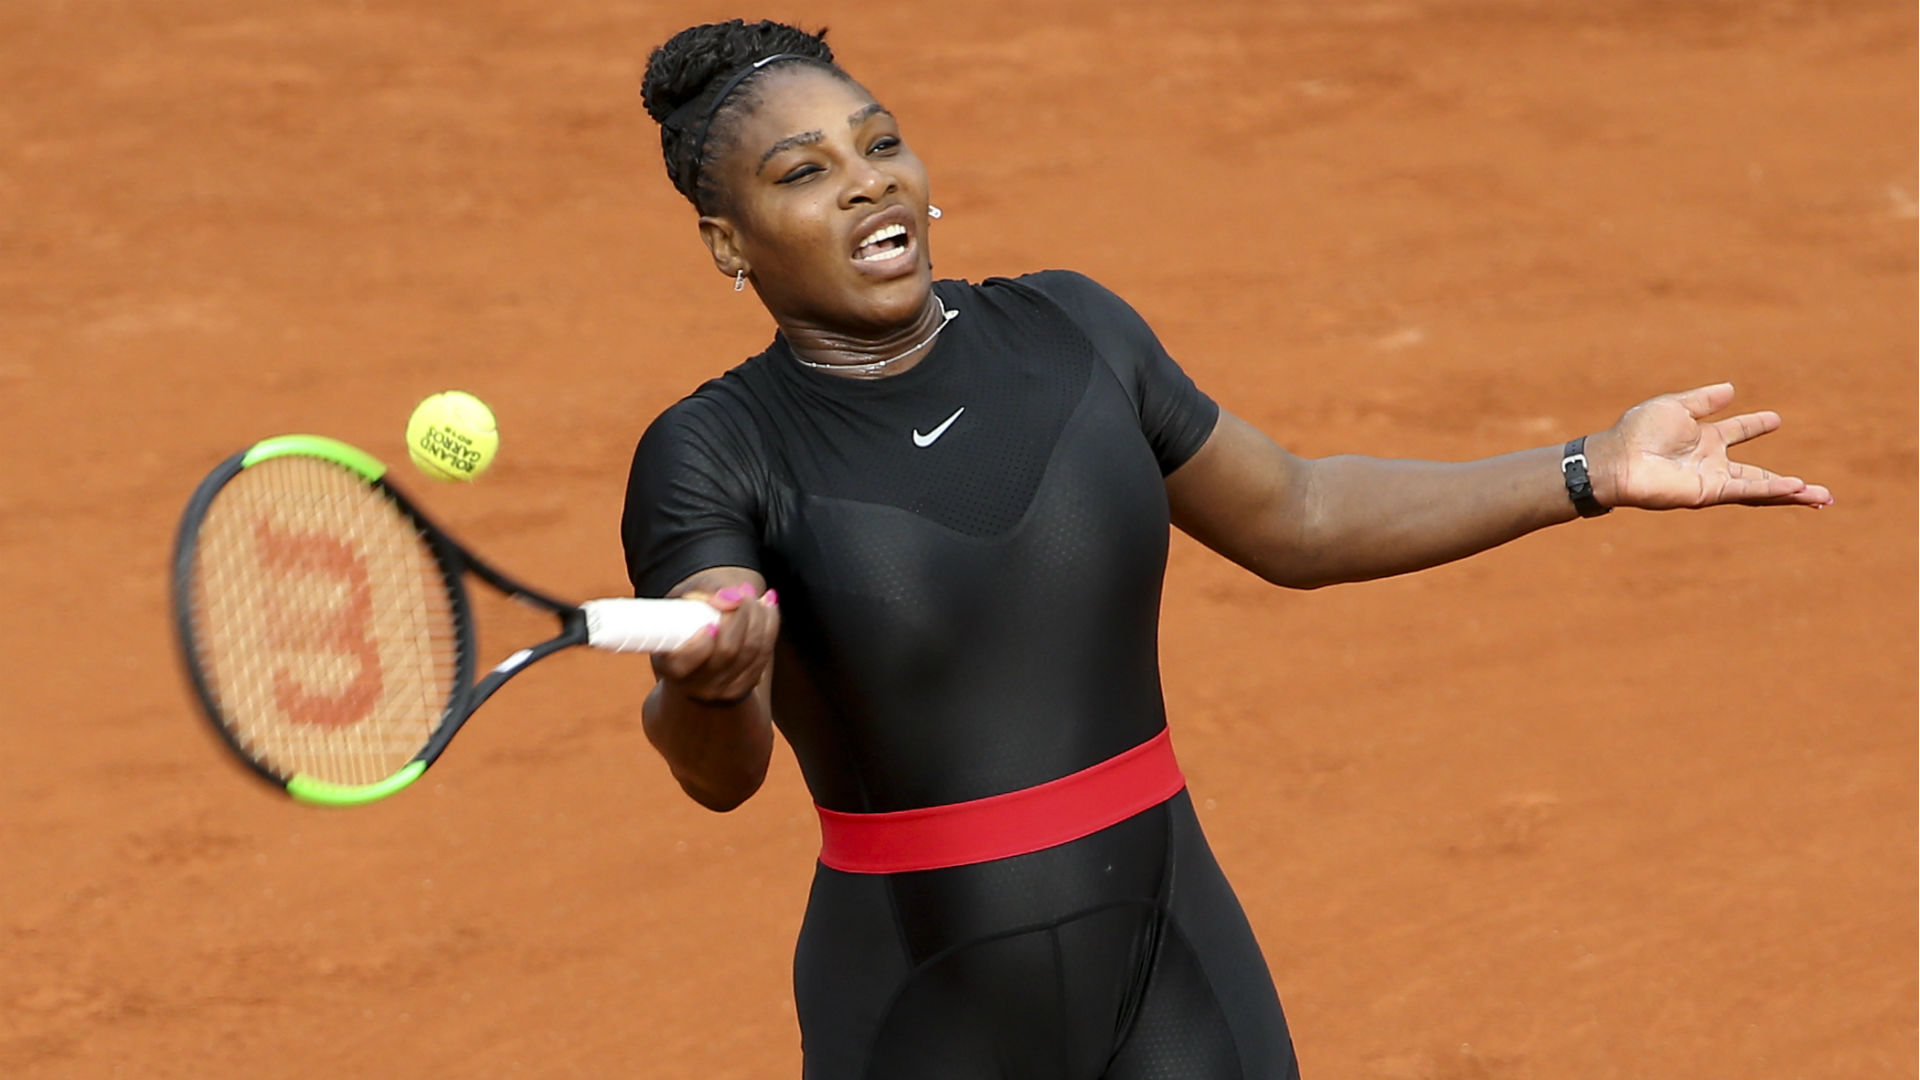 Serena Williams Wins in Her Return to the French Open